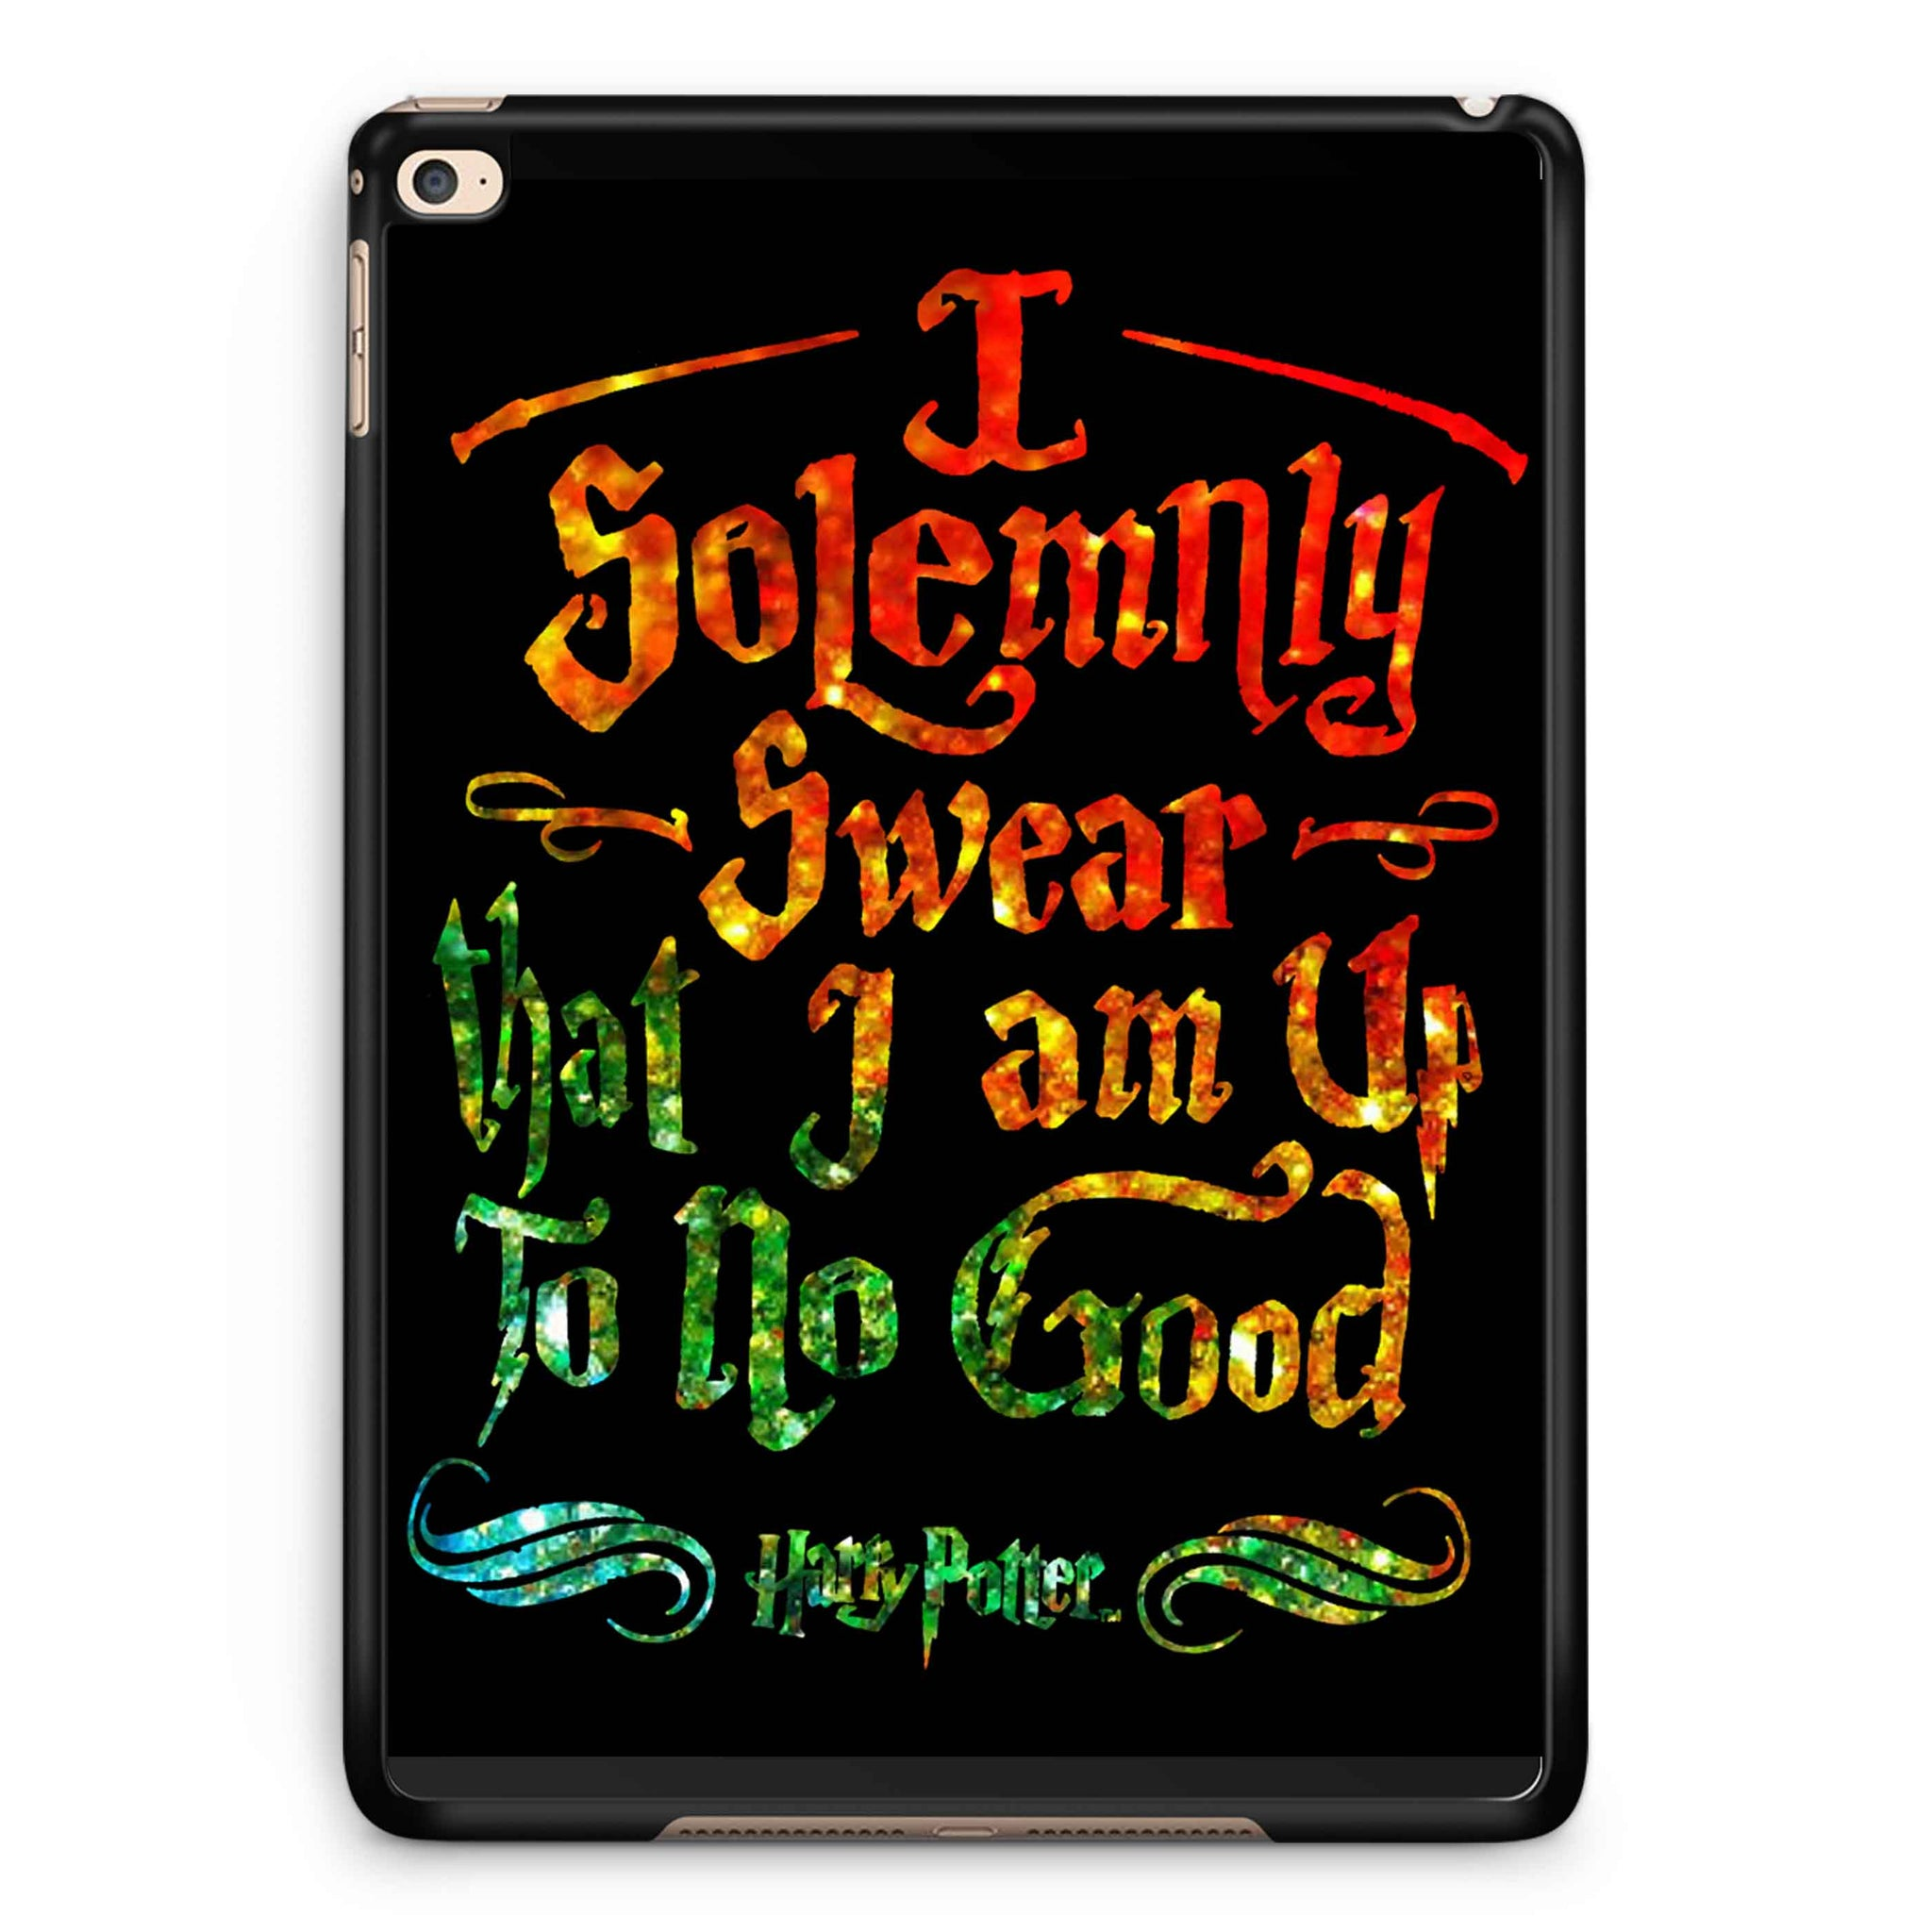 Harry Potter Solemnly Swear Glitter Rainbow iPad 2 / 3 / 4 / 5 / 6| iPad Air / Air 2 | iPad Mini 1 / 2 / 3 / 4 | iPad Pro Case